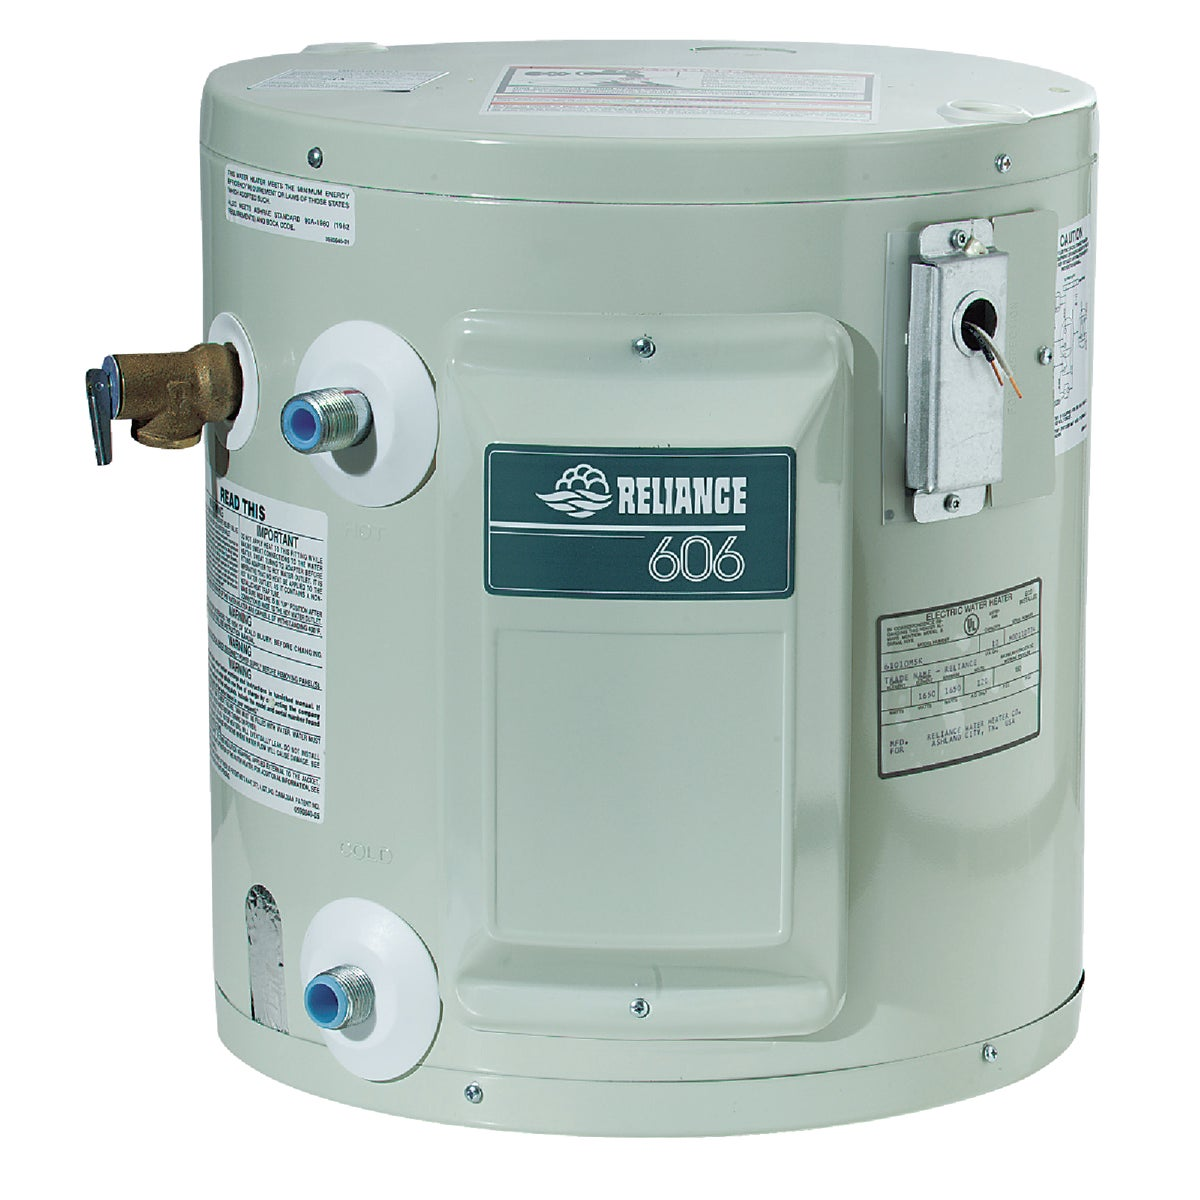 Reliance/Added Sales 10GAL ELEC WATER HEATER 6-10-SOMS K